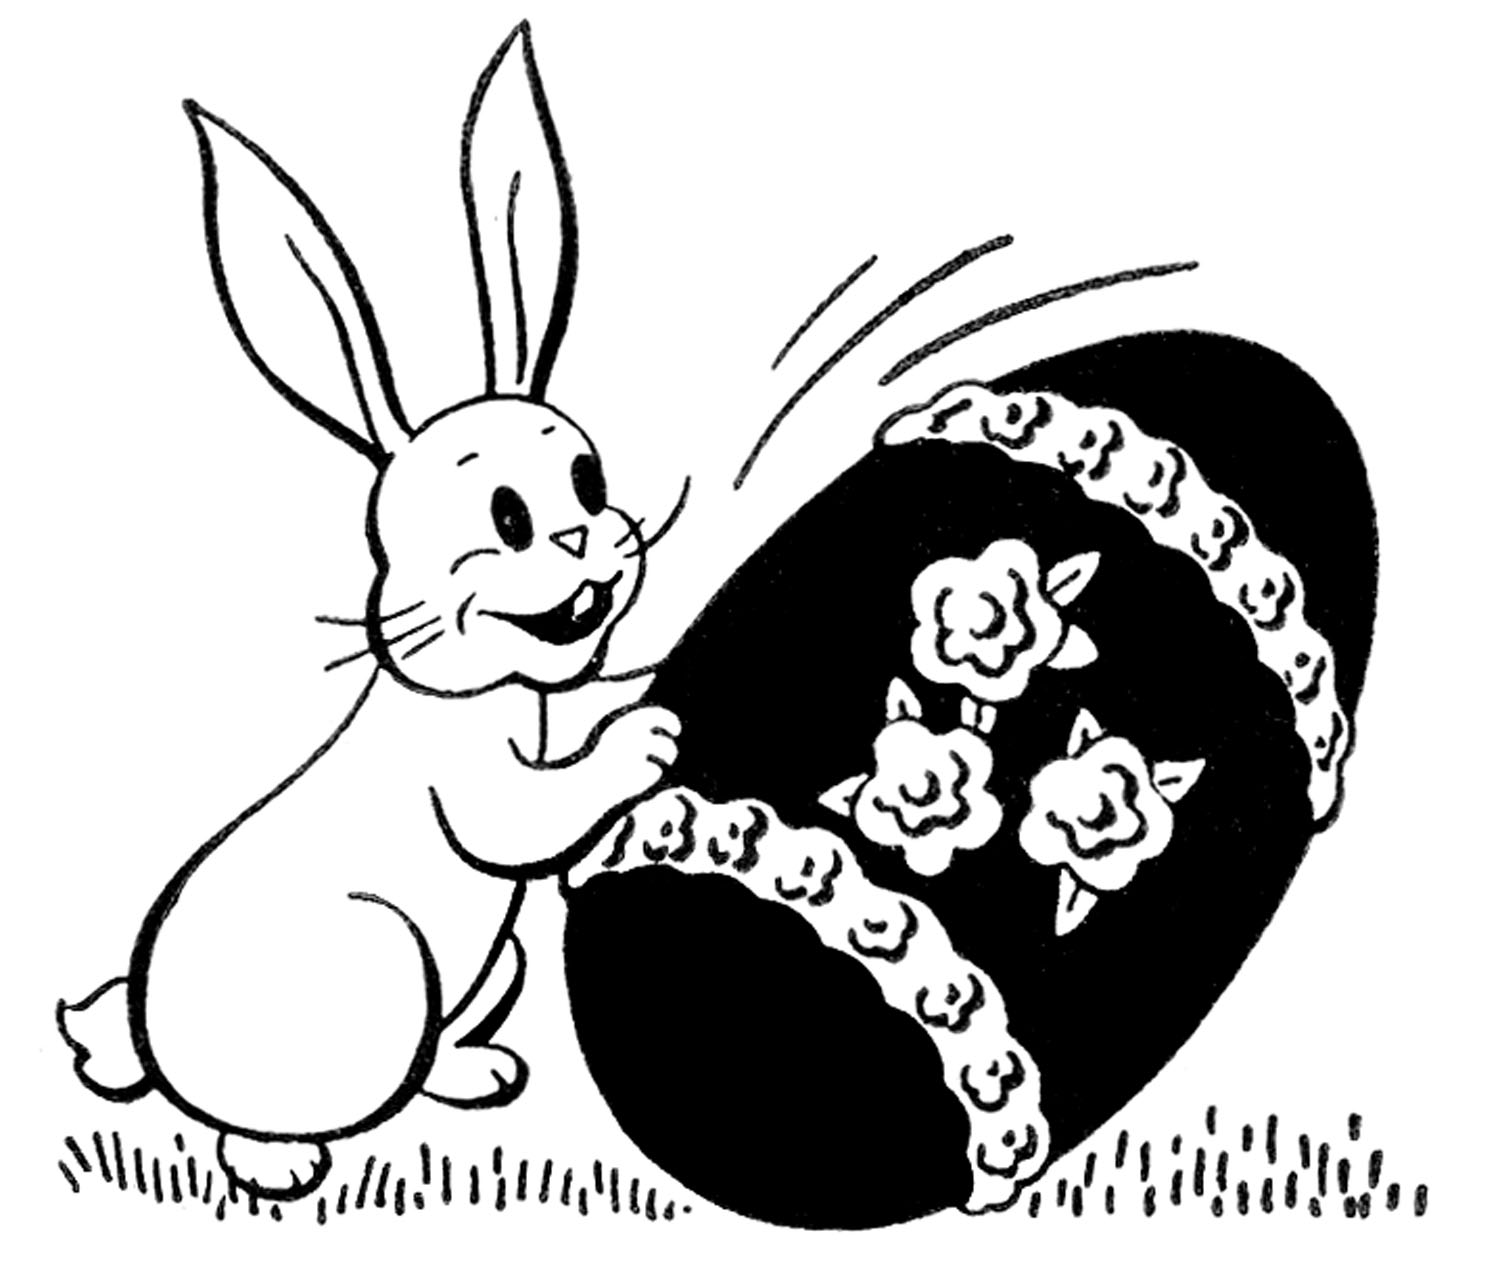 picture of easter bunny easter bunny bugs bunny coloring book rabbit png bunny of picture easter